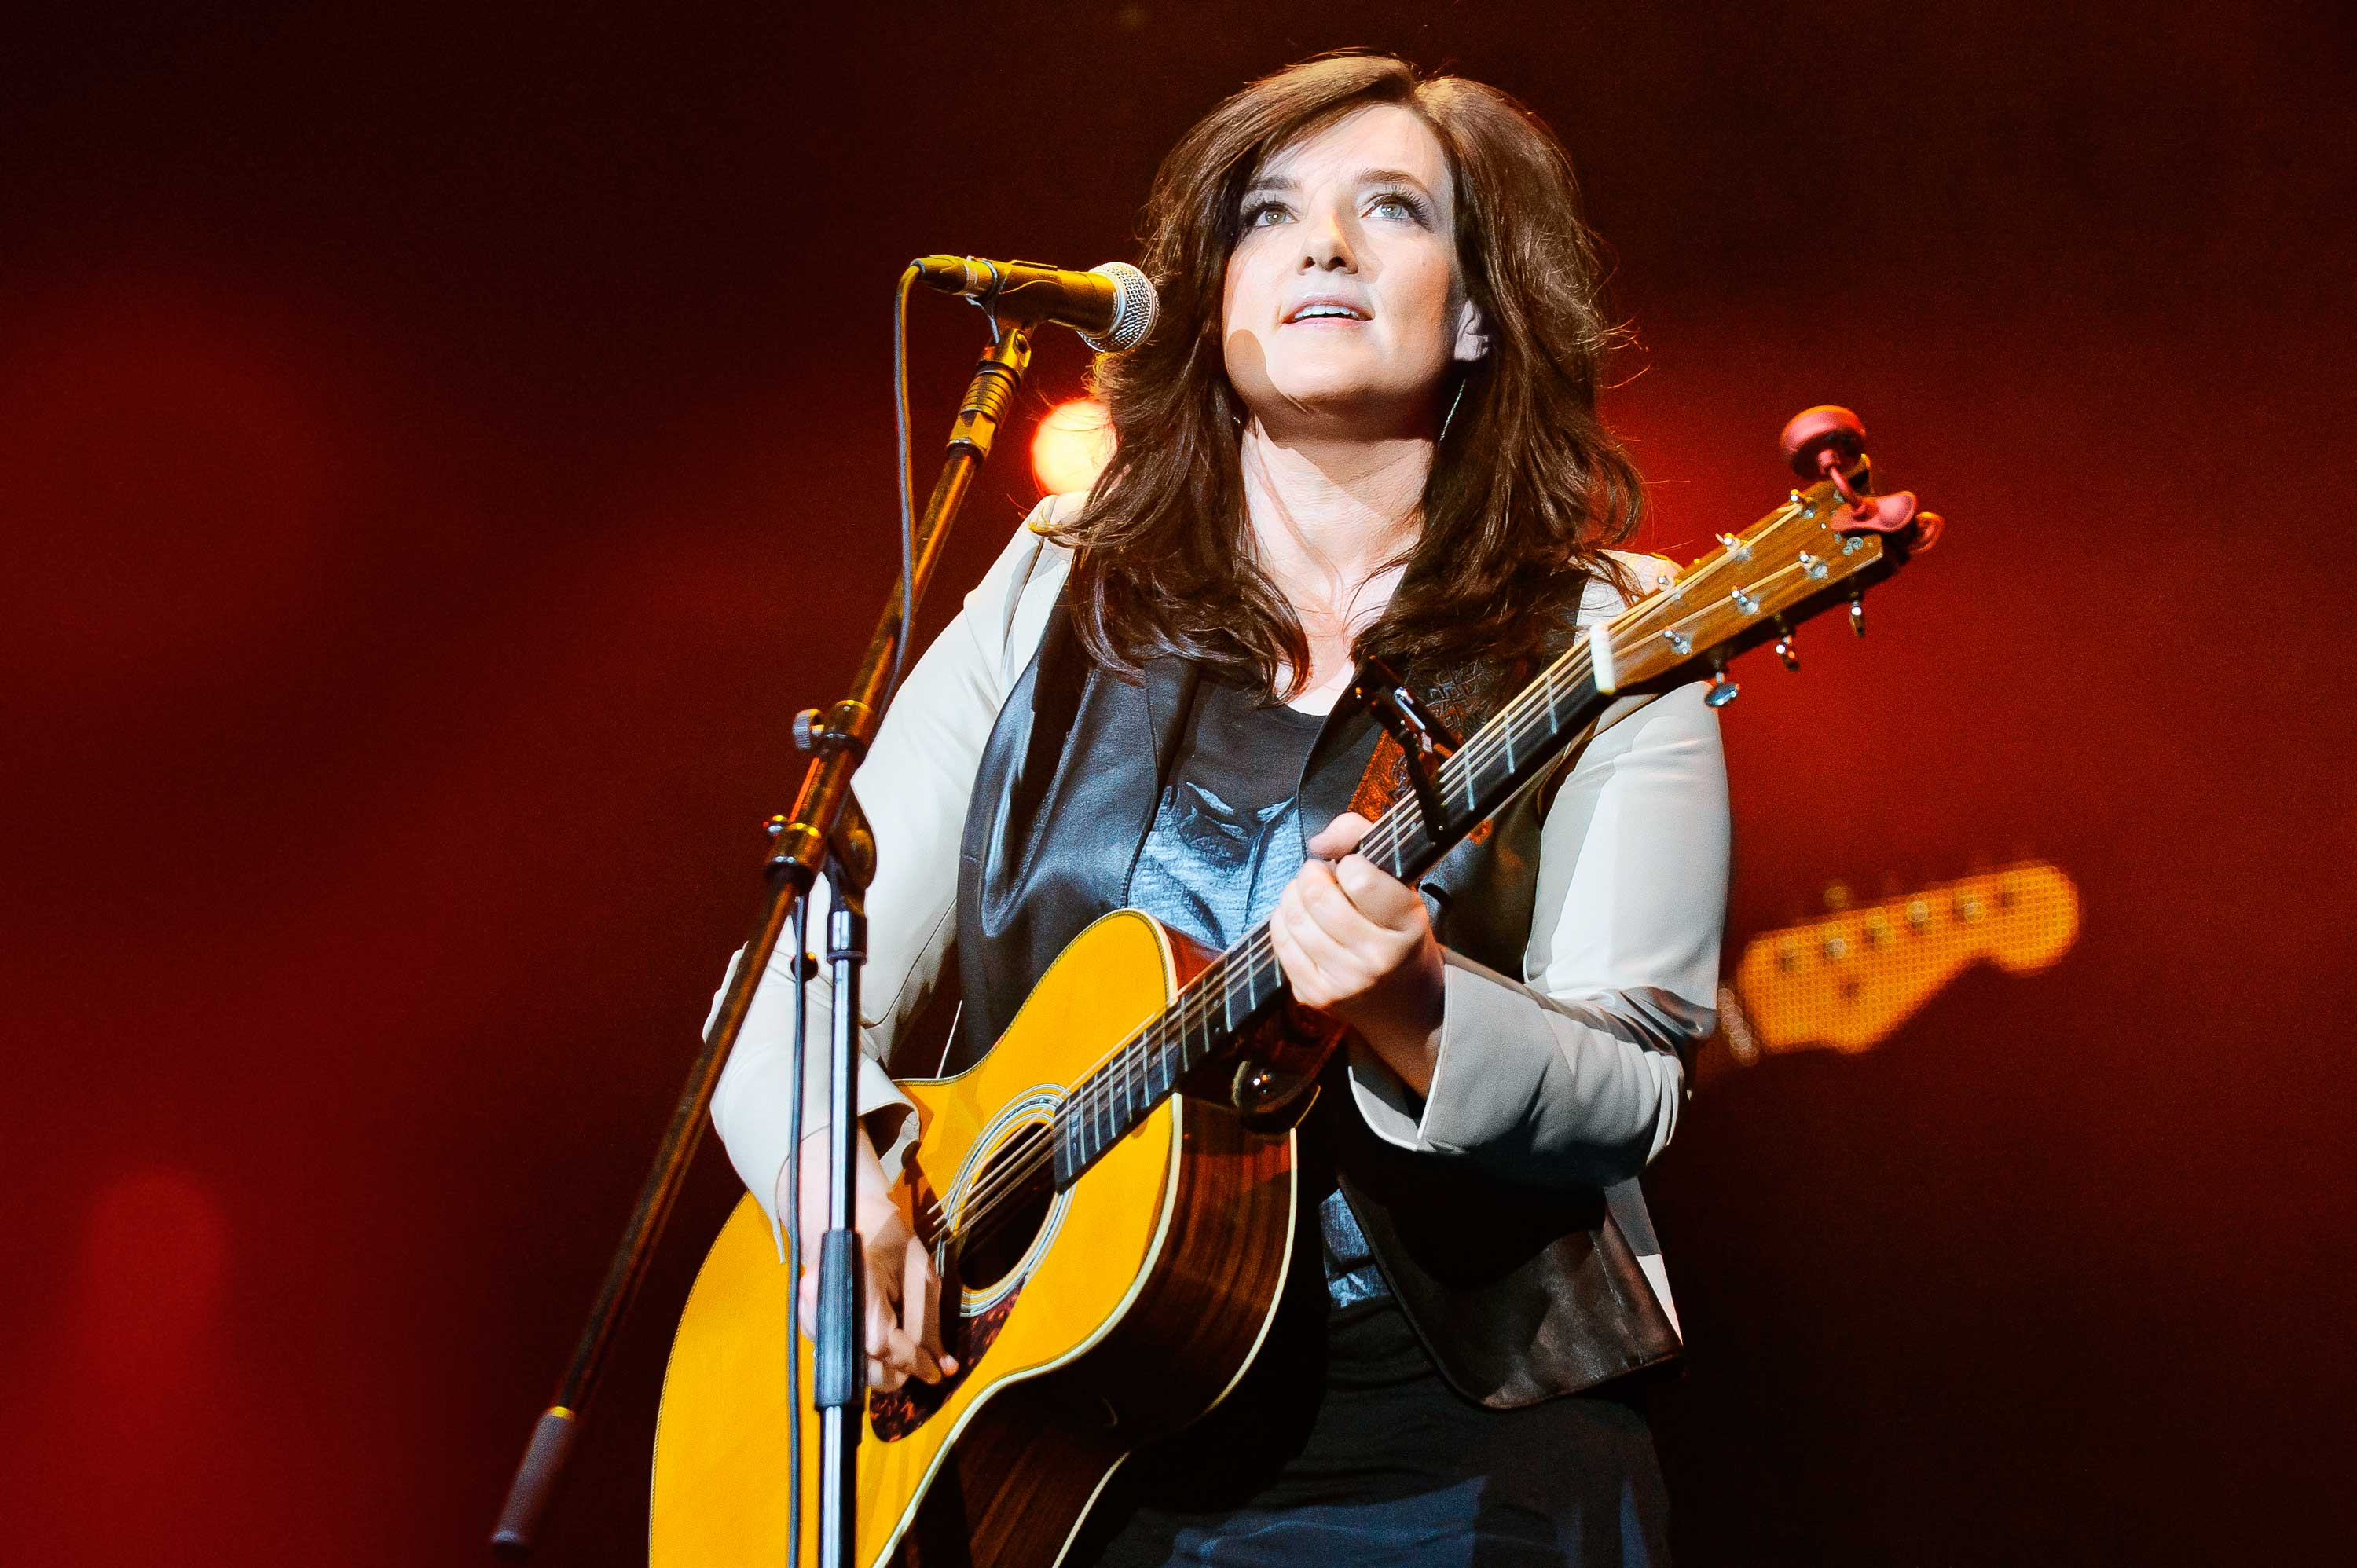 Brandy Clark has an eye for Small Town details